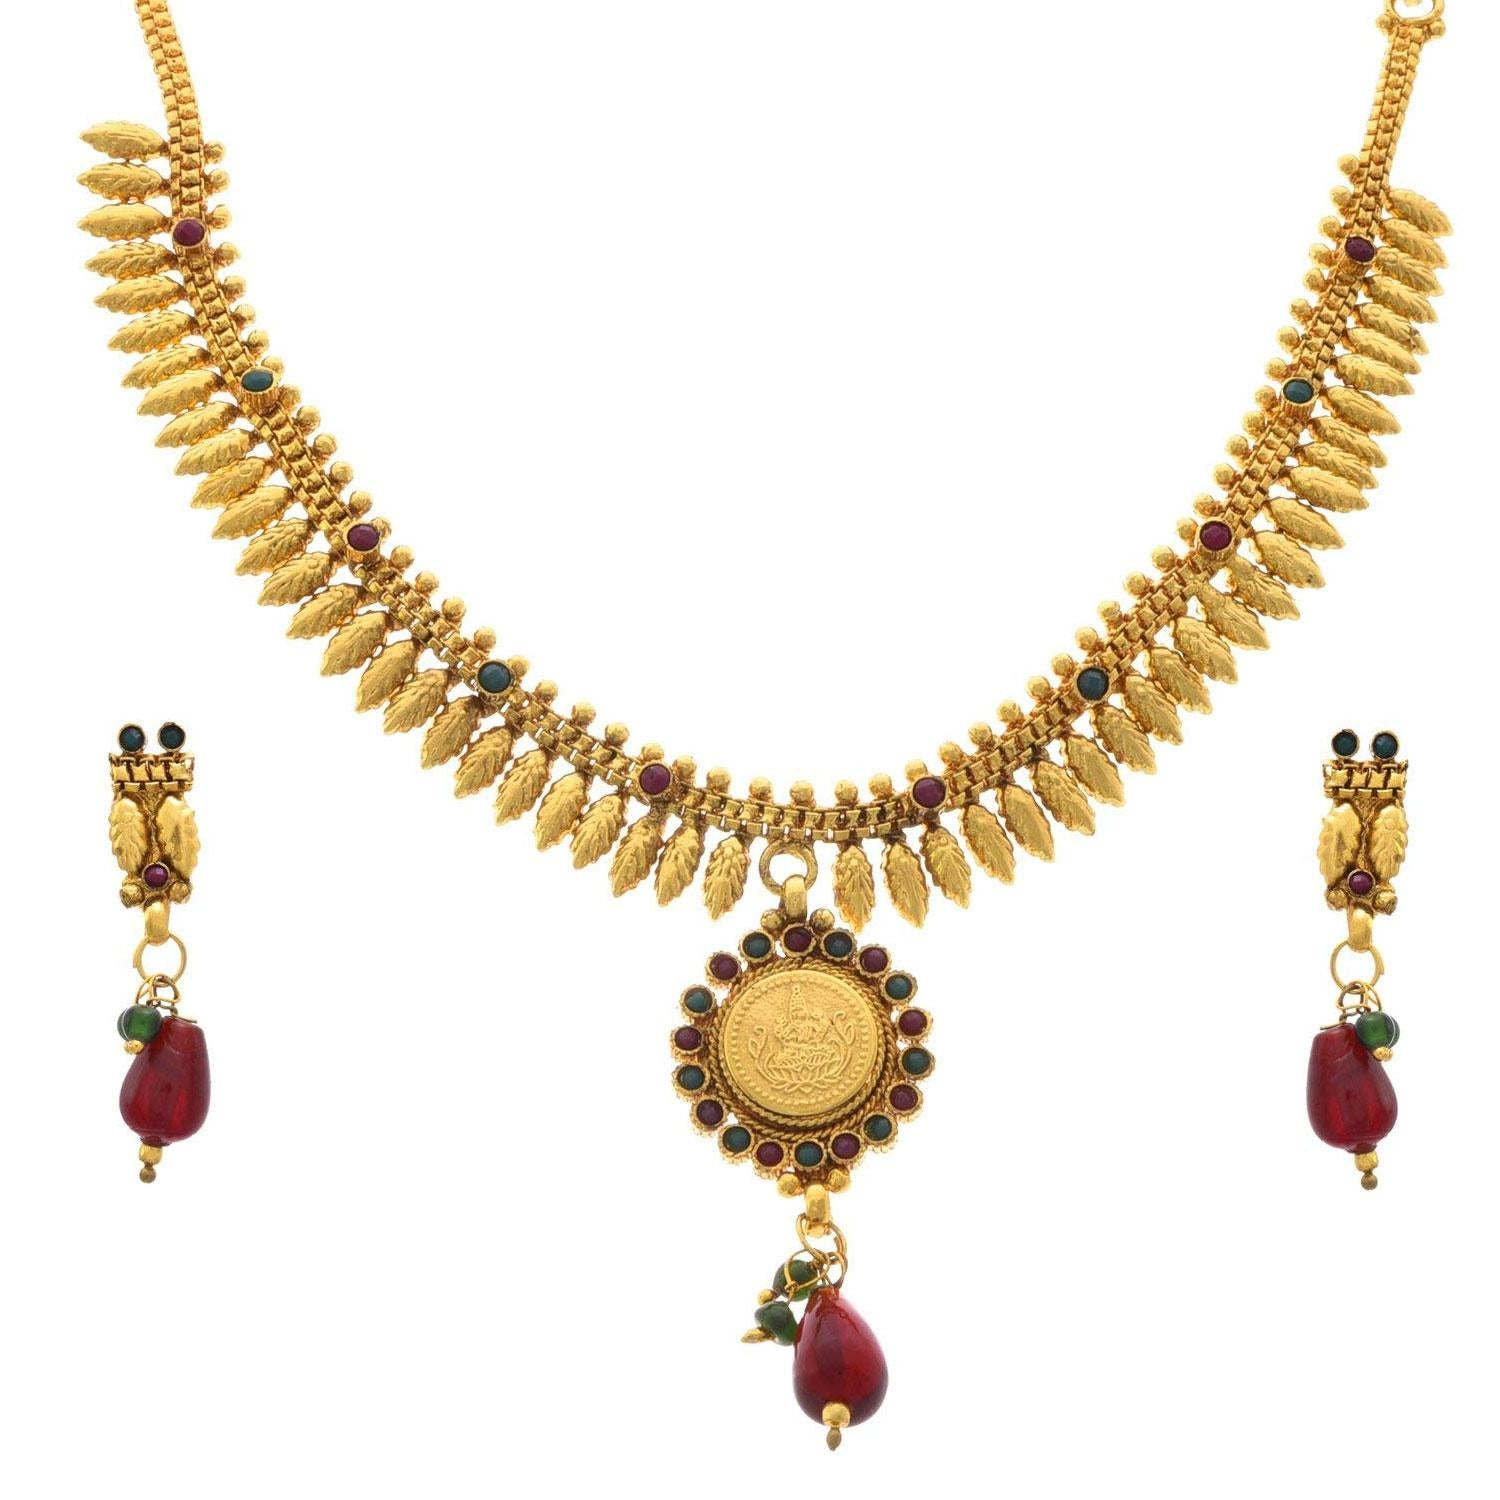 JFL - Traditional Ethnic One Gram Gold Plated Temple Laxmi Goddess Stone Designer Necklace Set with Earring for Women & Girls.